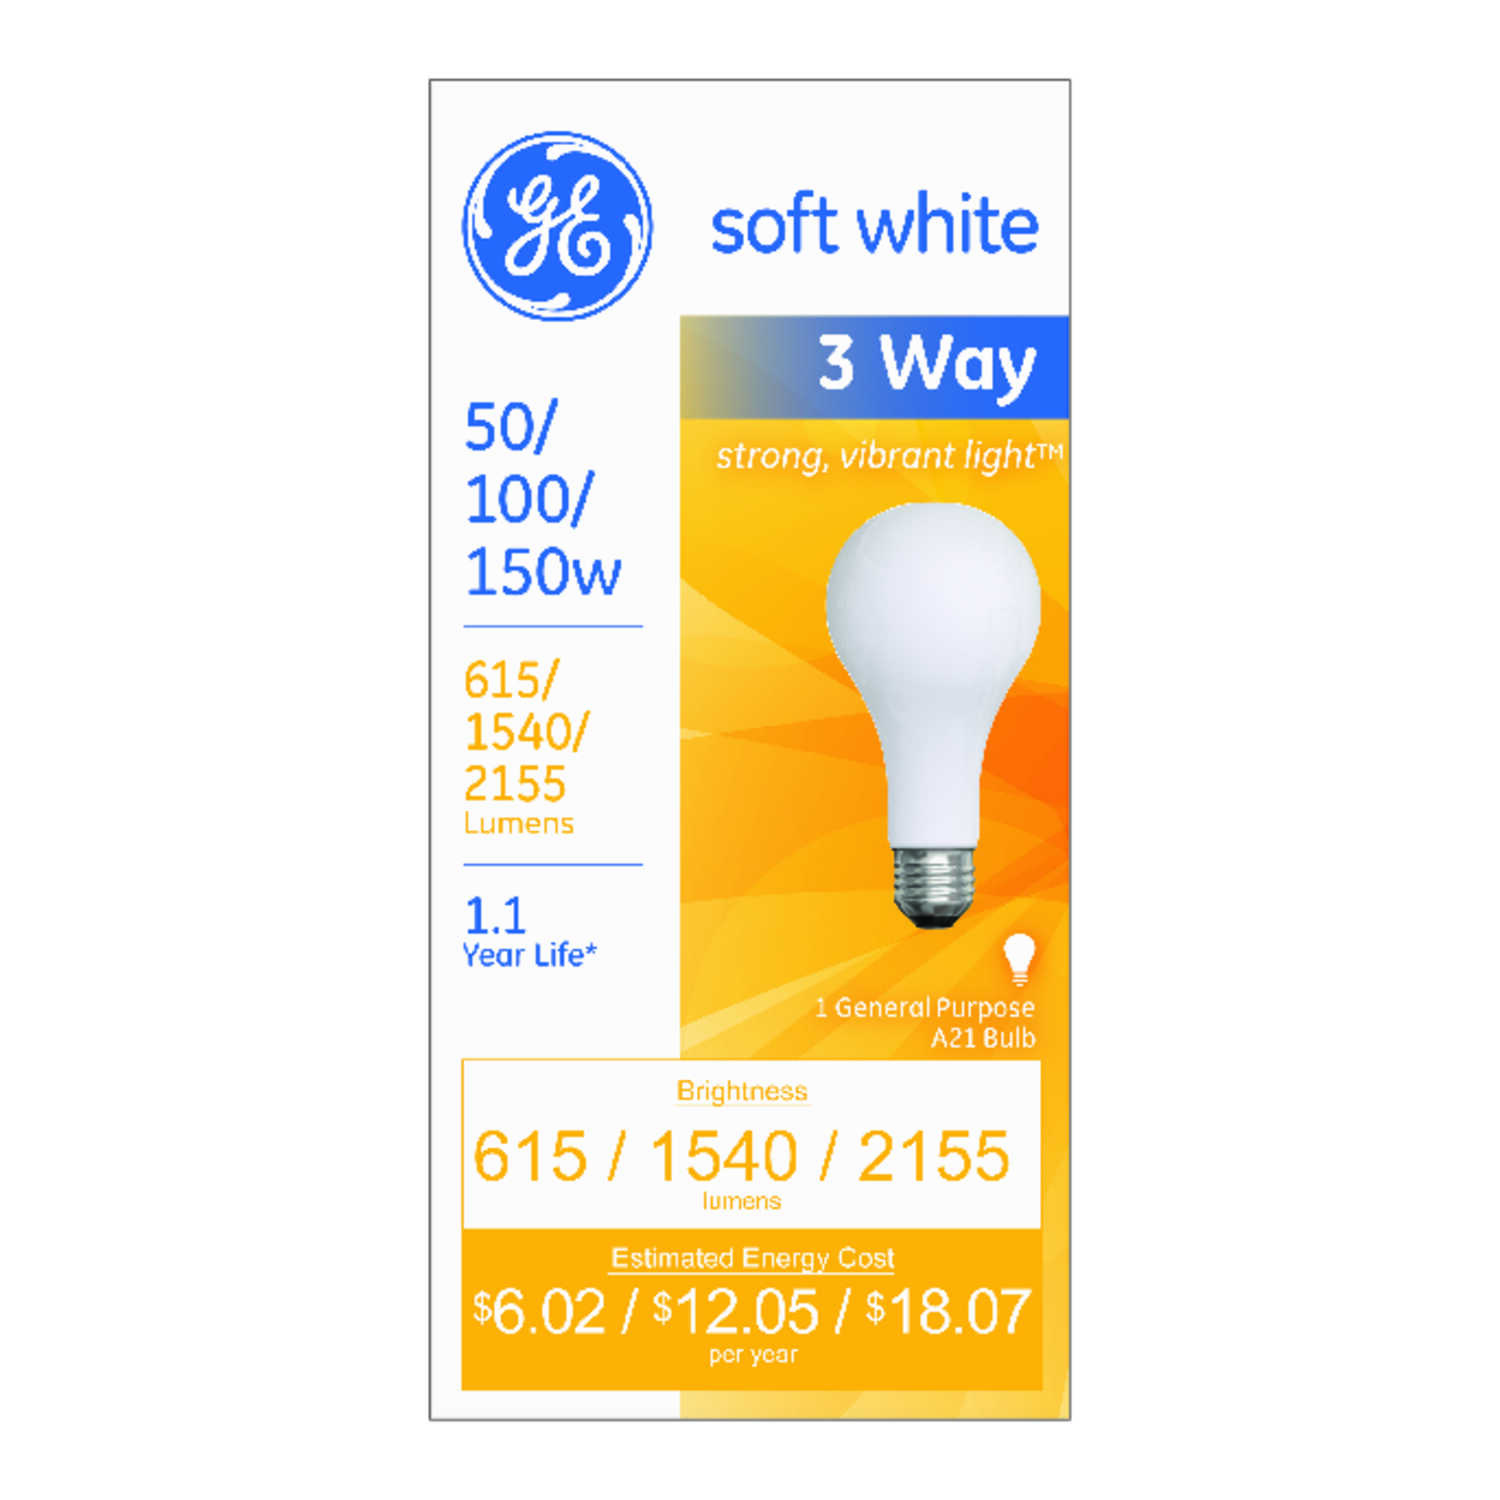 Ge Lighting 50 100 150 Watts A21 Incandescent Bulb 615 1 540 2 155